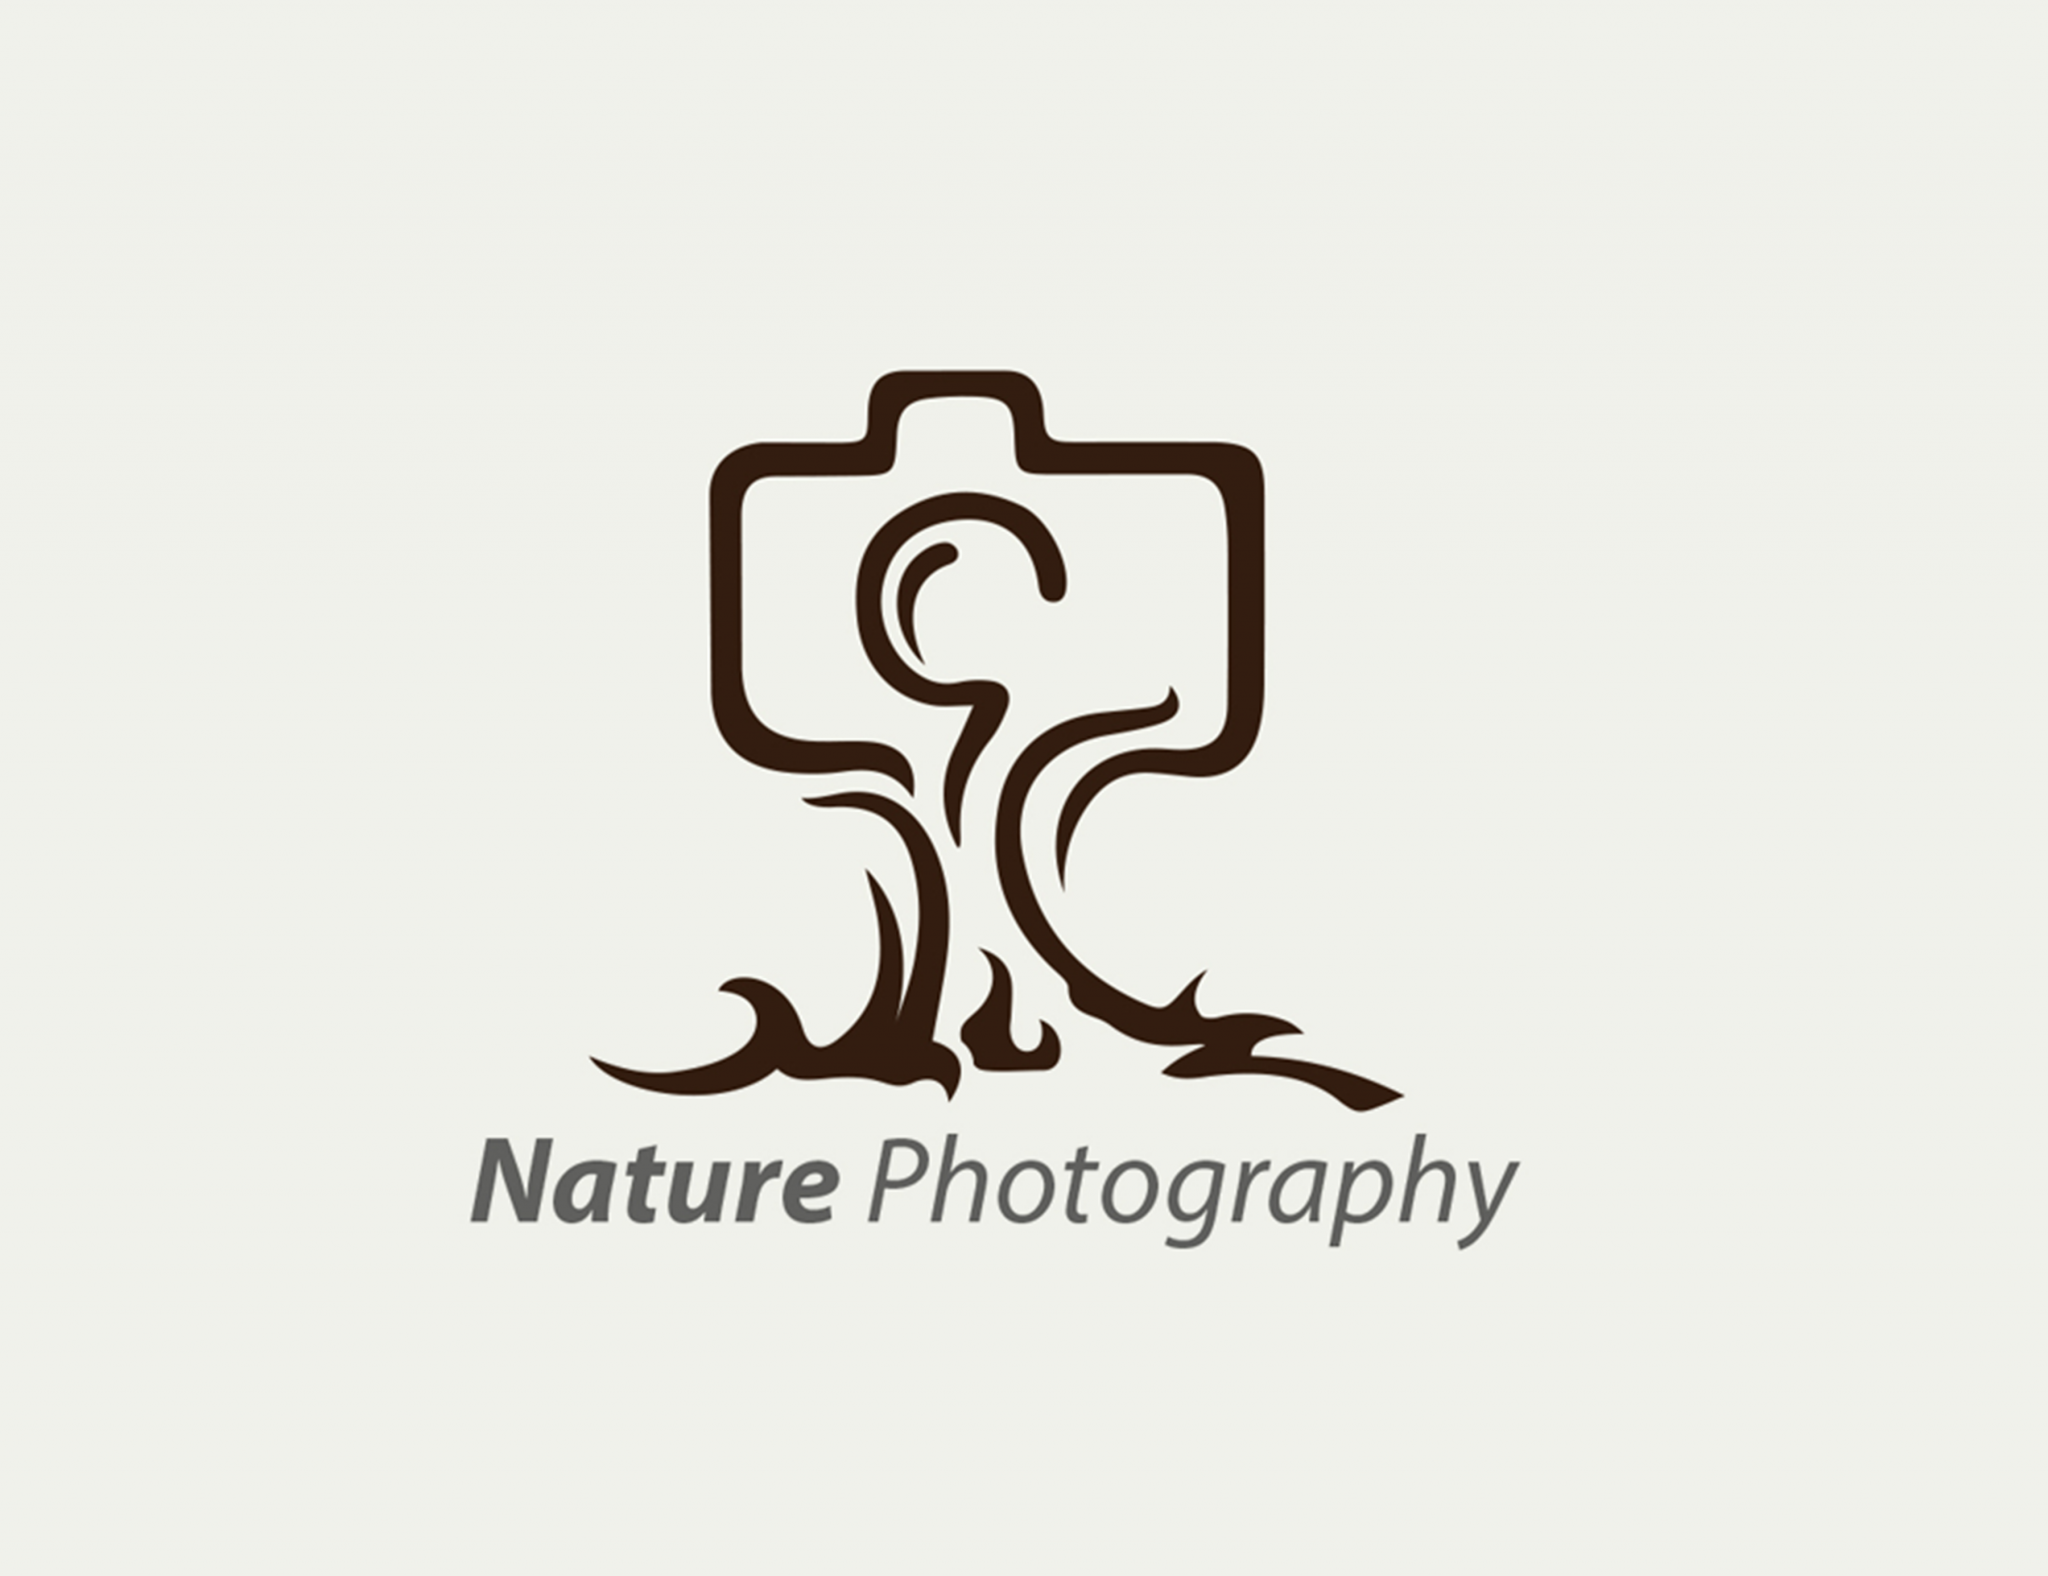 Cool Creative Photography Logo Design Exles And Ideas For You With Designs